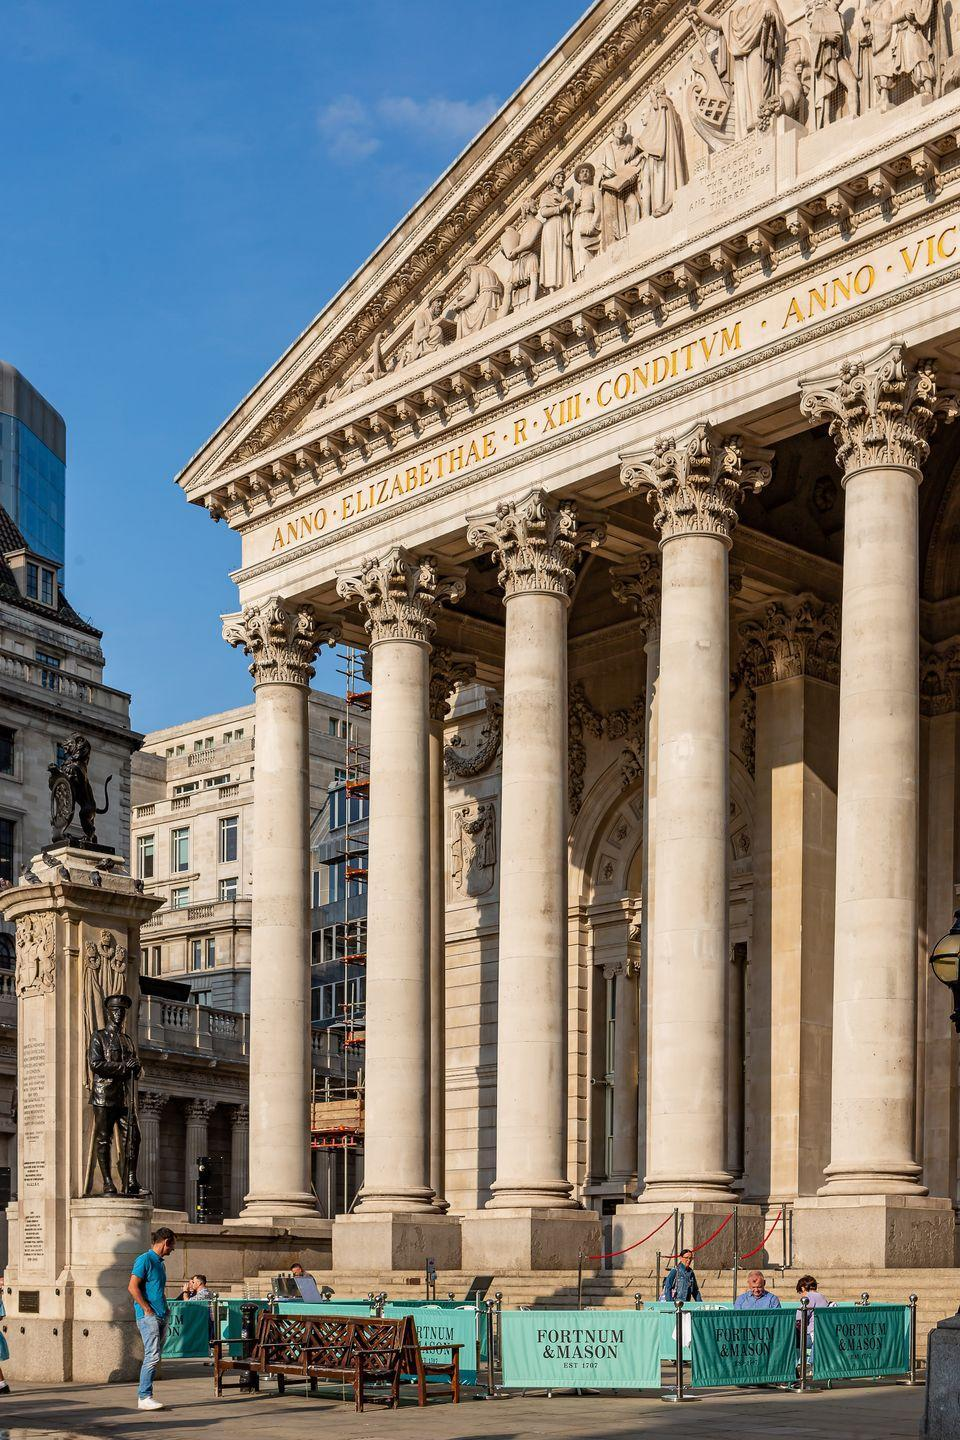 "<p>In the heart of the city, in Bank, Fortnum & Mason are reopening their terrace on the doors of the <a href=""https://www.fortnumandmason.com/the-bar-and-restaurant-at-the-royal-exchange-london"" rel=""nofollow noopener"" target=""_blank"" data-ylk=""slk:Royal Exchange"" class=""link rapid-noclick-resp"">Royal Exchange</a> building for a fine dining option while settling back into the city.</p>"